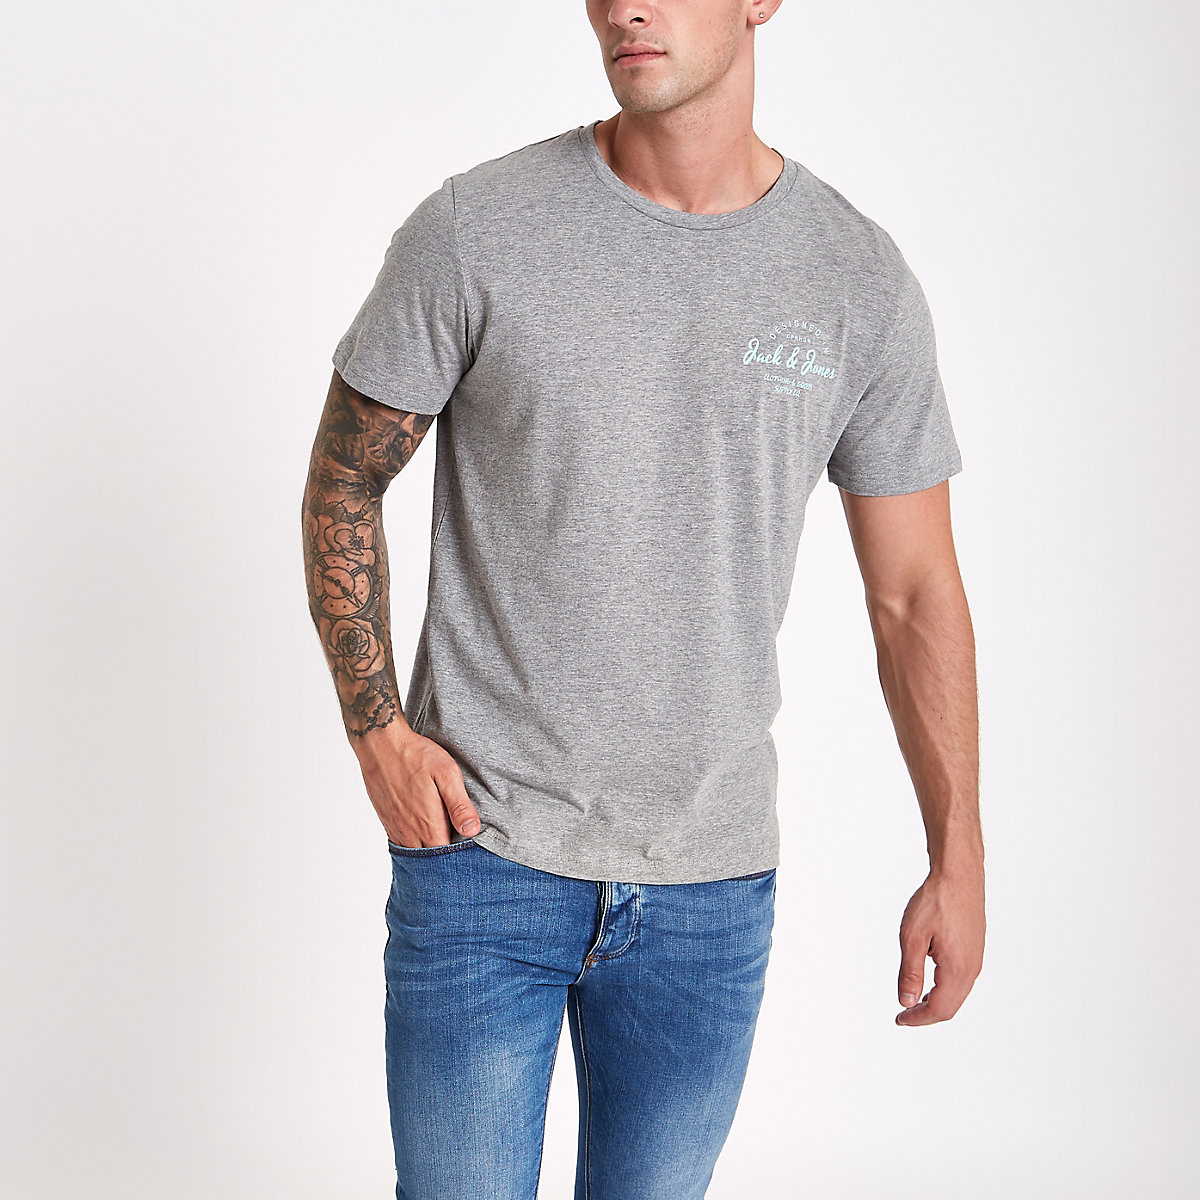 Jack & Jones Originals grey T-shirt